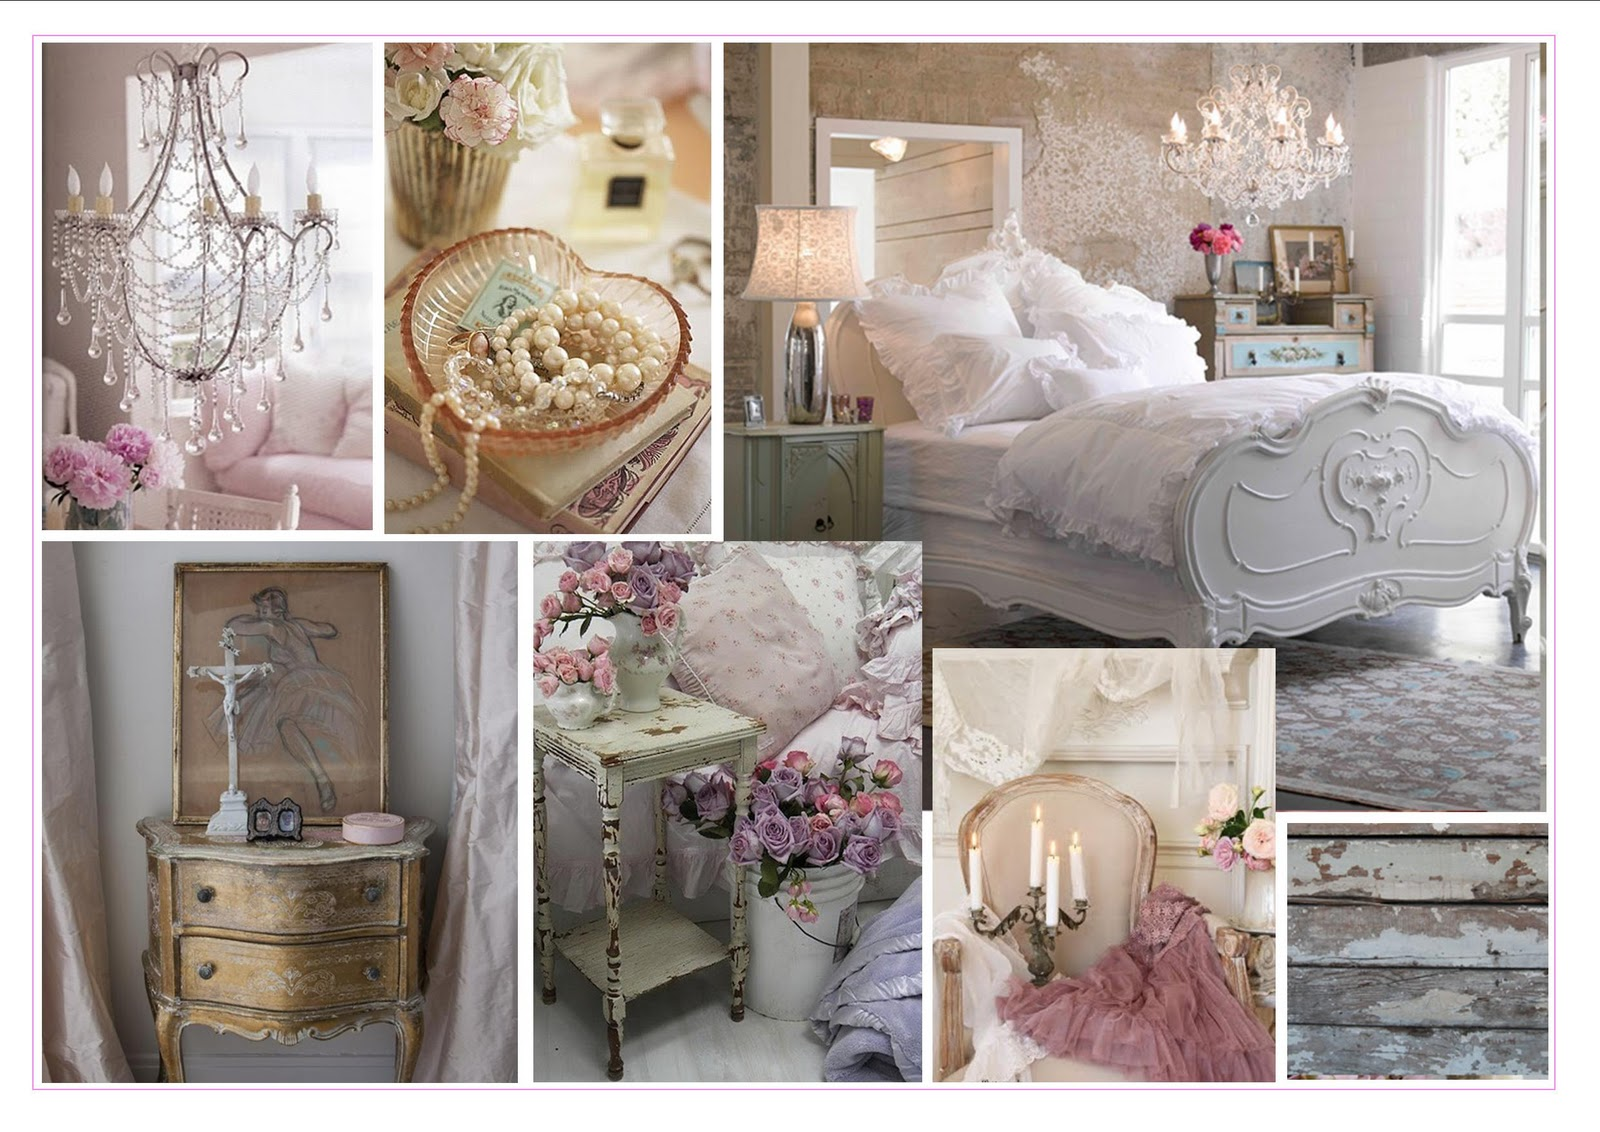 Moodboards Monday - Shabby Chic Bedroom - The Home Interiors Partner